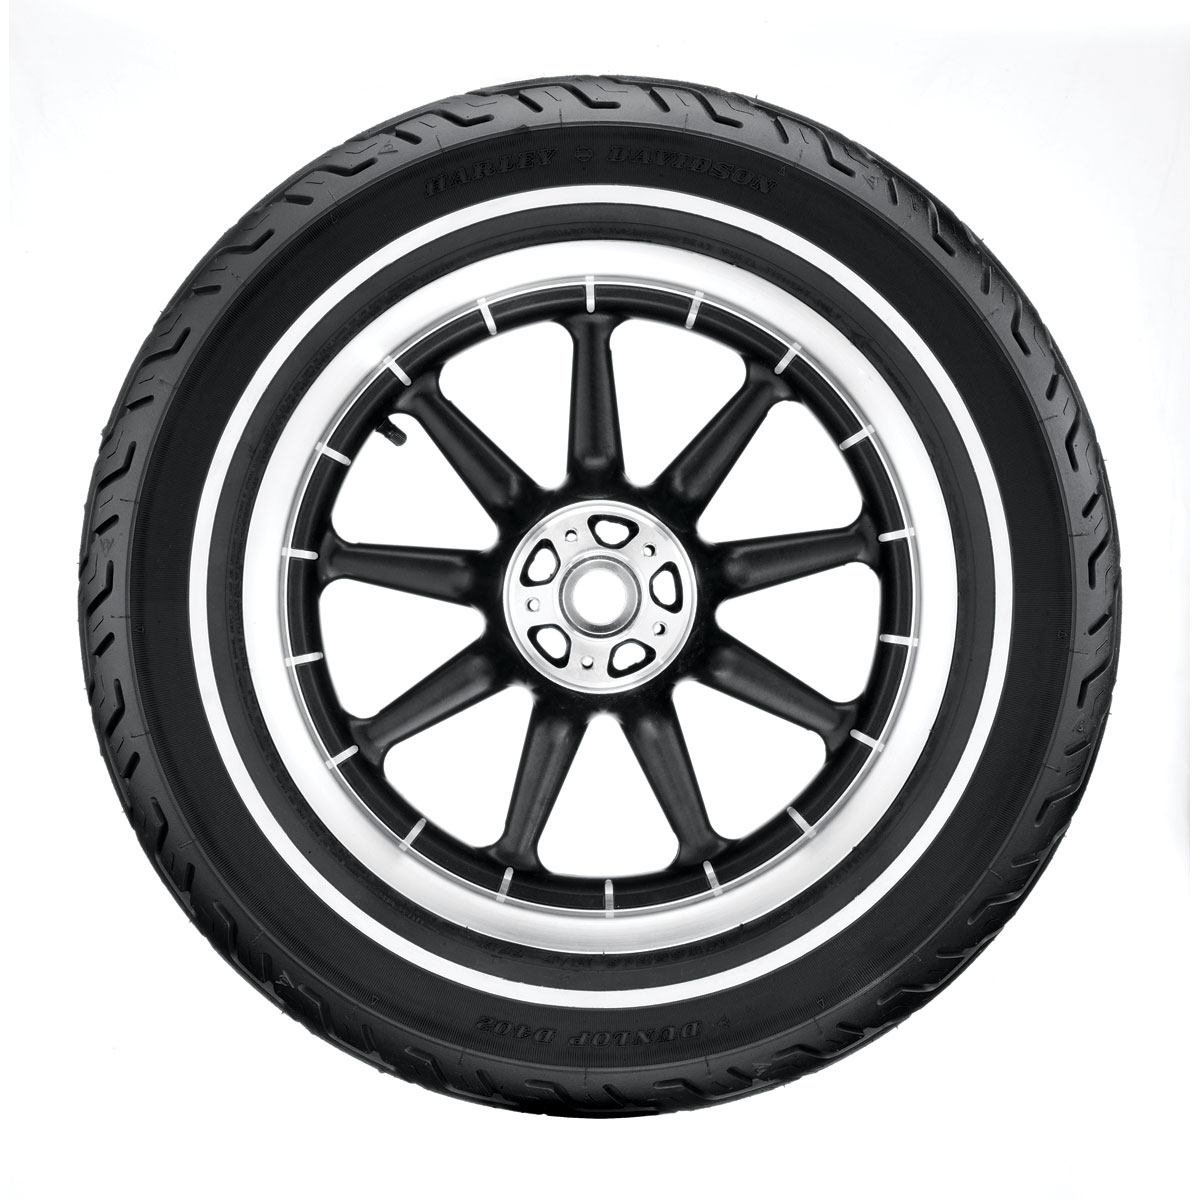 Dunlop D402 Touring MU85B16 Narrow Whitewall Rear Tire